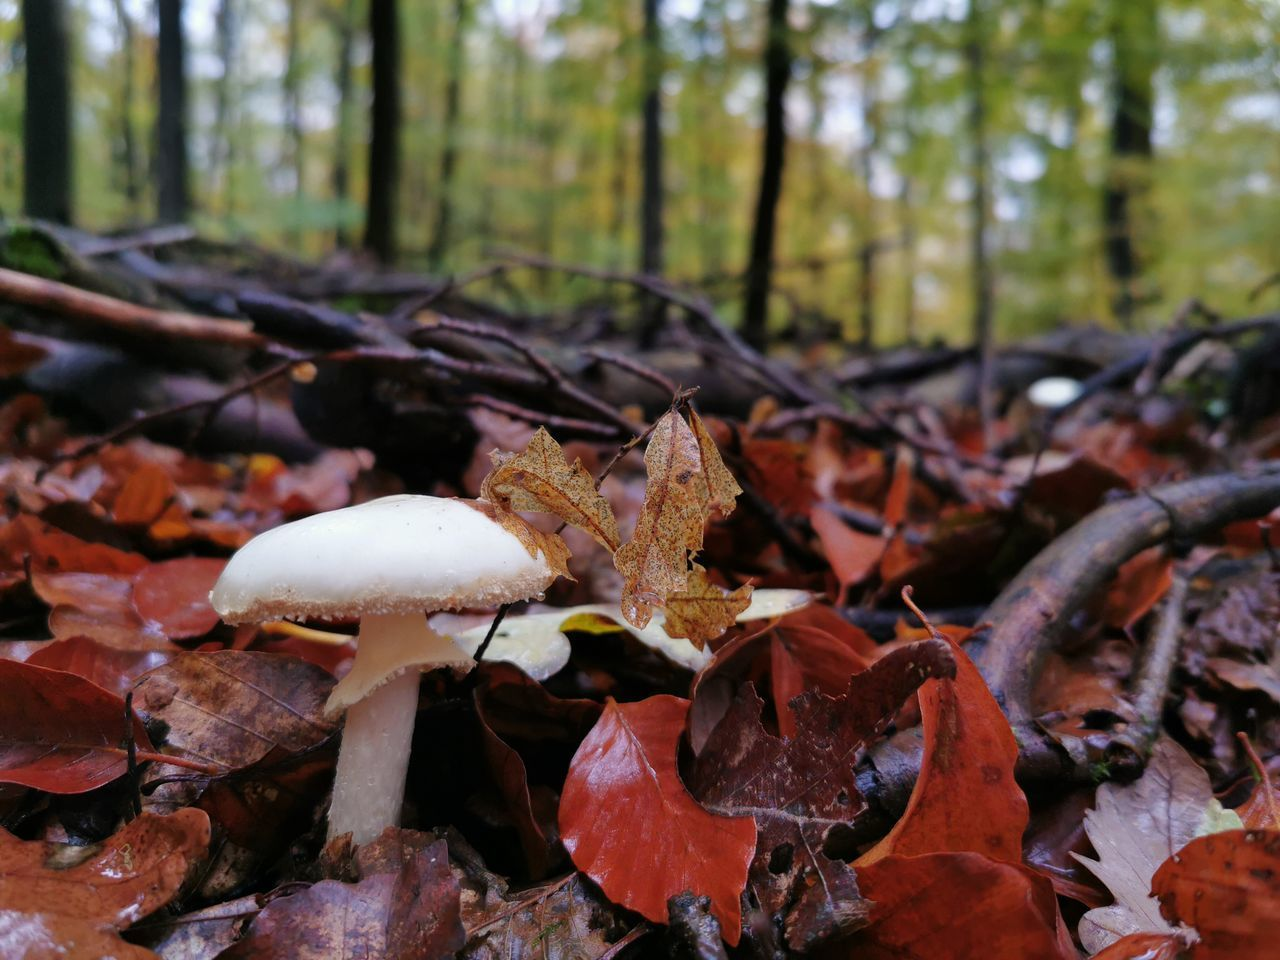 fungus, mushroom, forest, tree, land, plant, growth, food, vegetable, toadstool, plant part, leaf, nature, beauty in nature, close-up, no people, focus on foreground, day, field, tranquility, outdoors, change, woodland, leaves, surface level